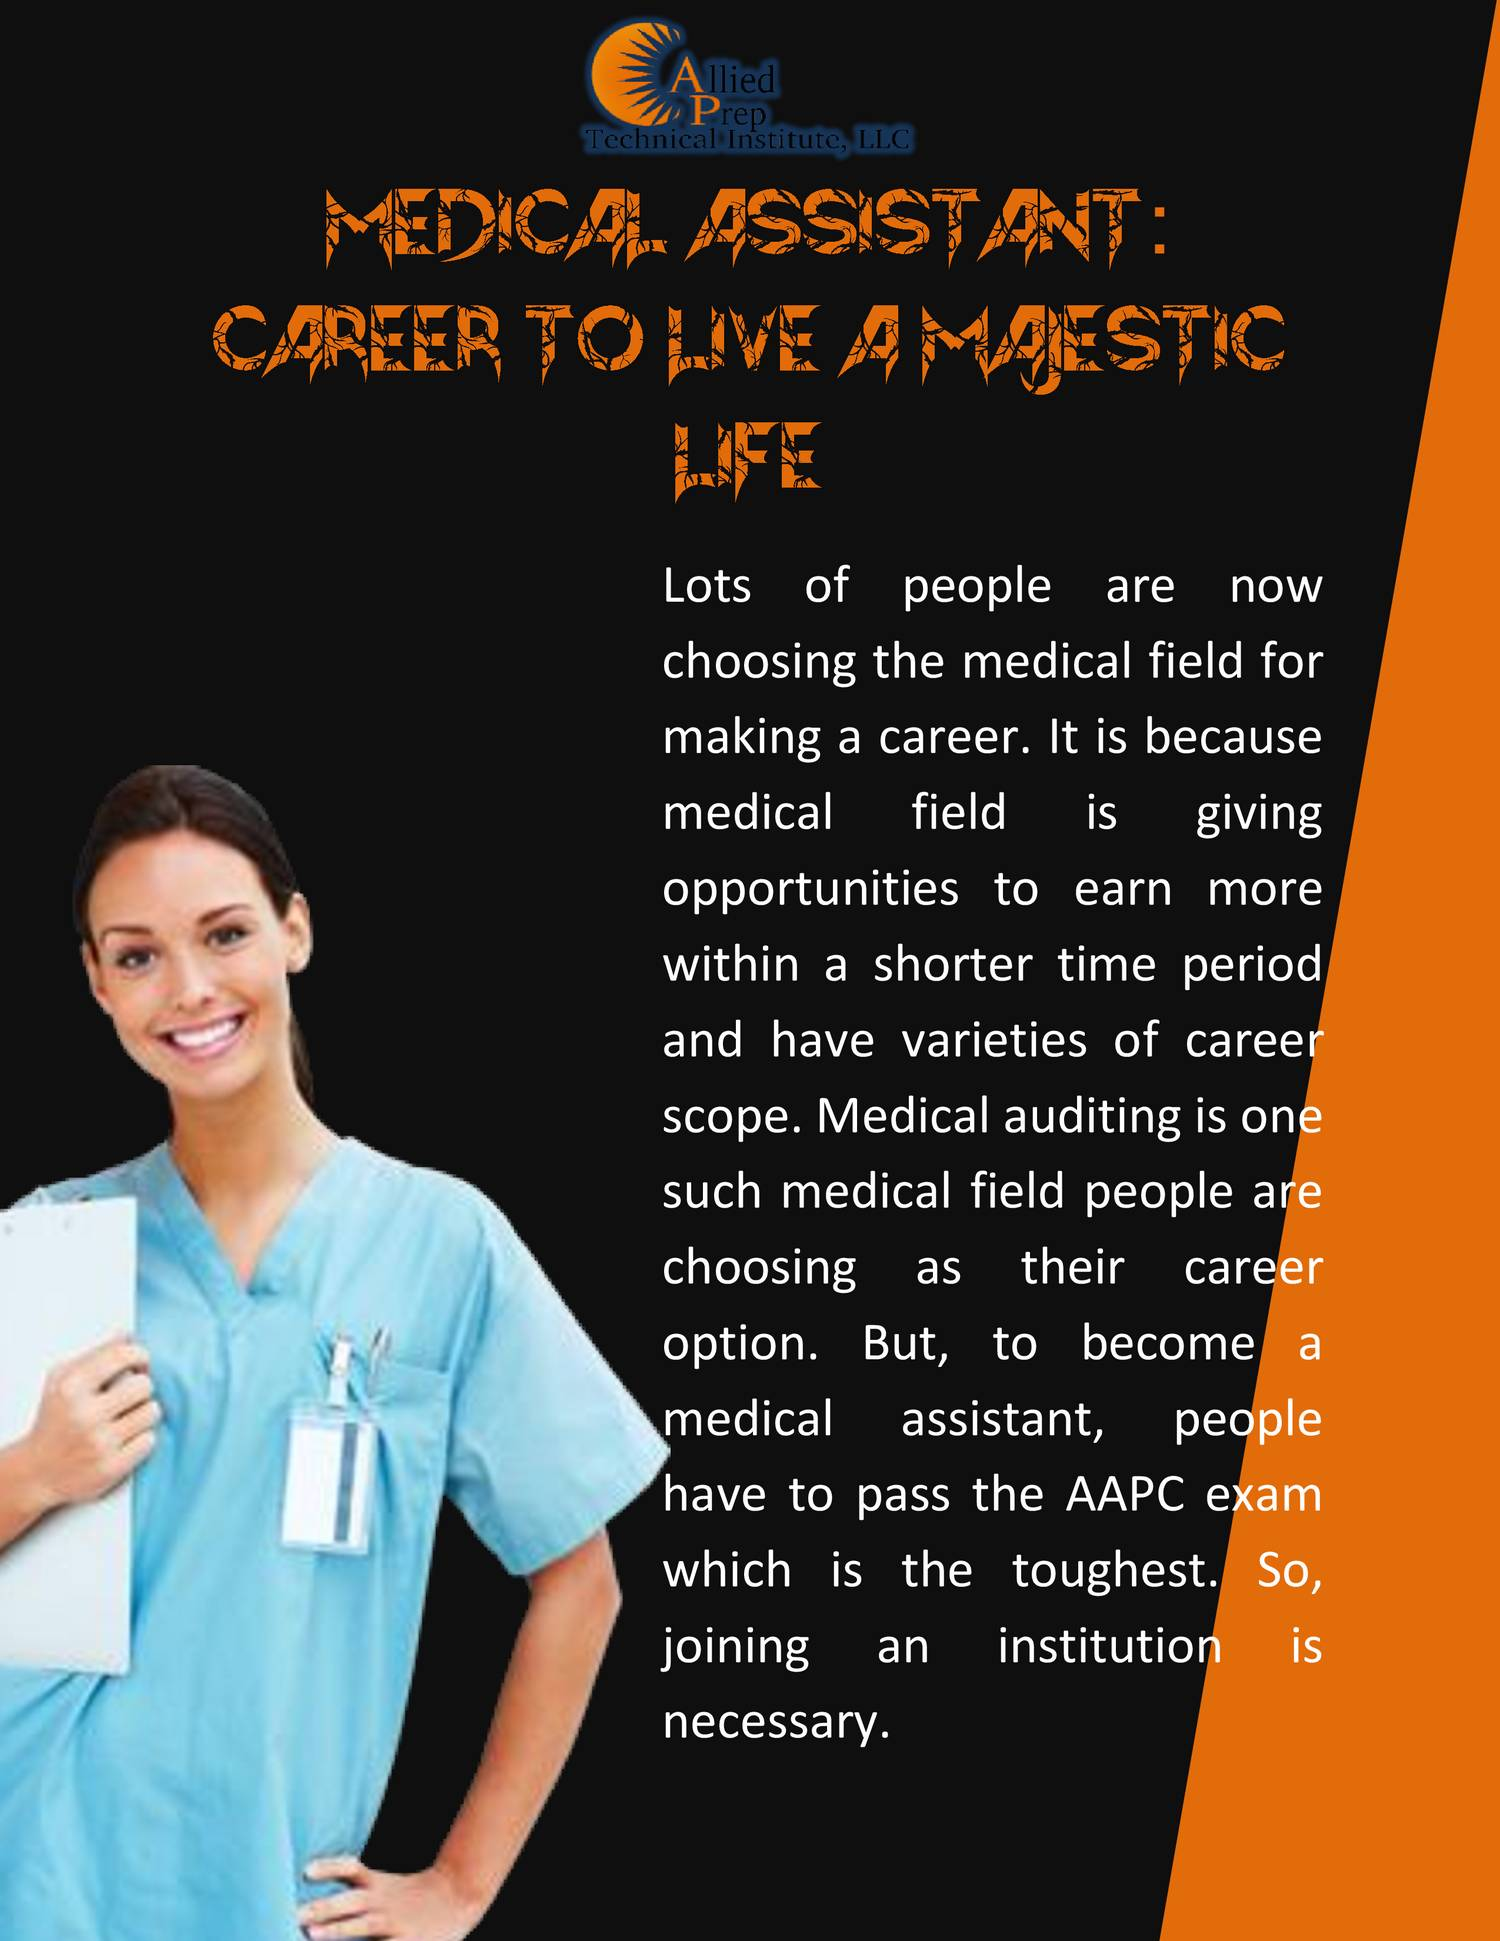 a career into the medical field